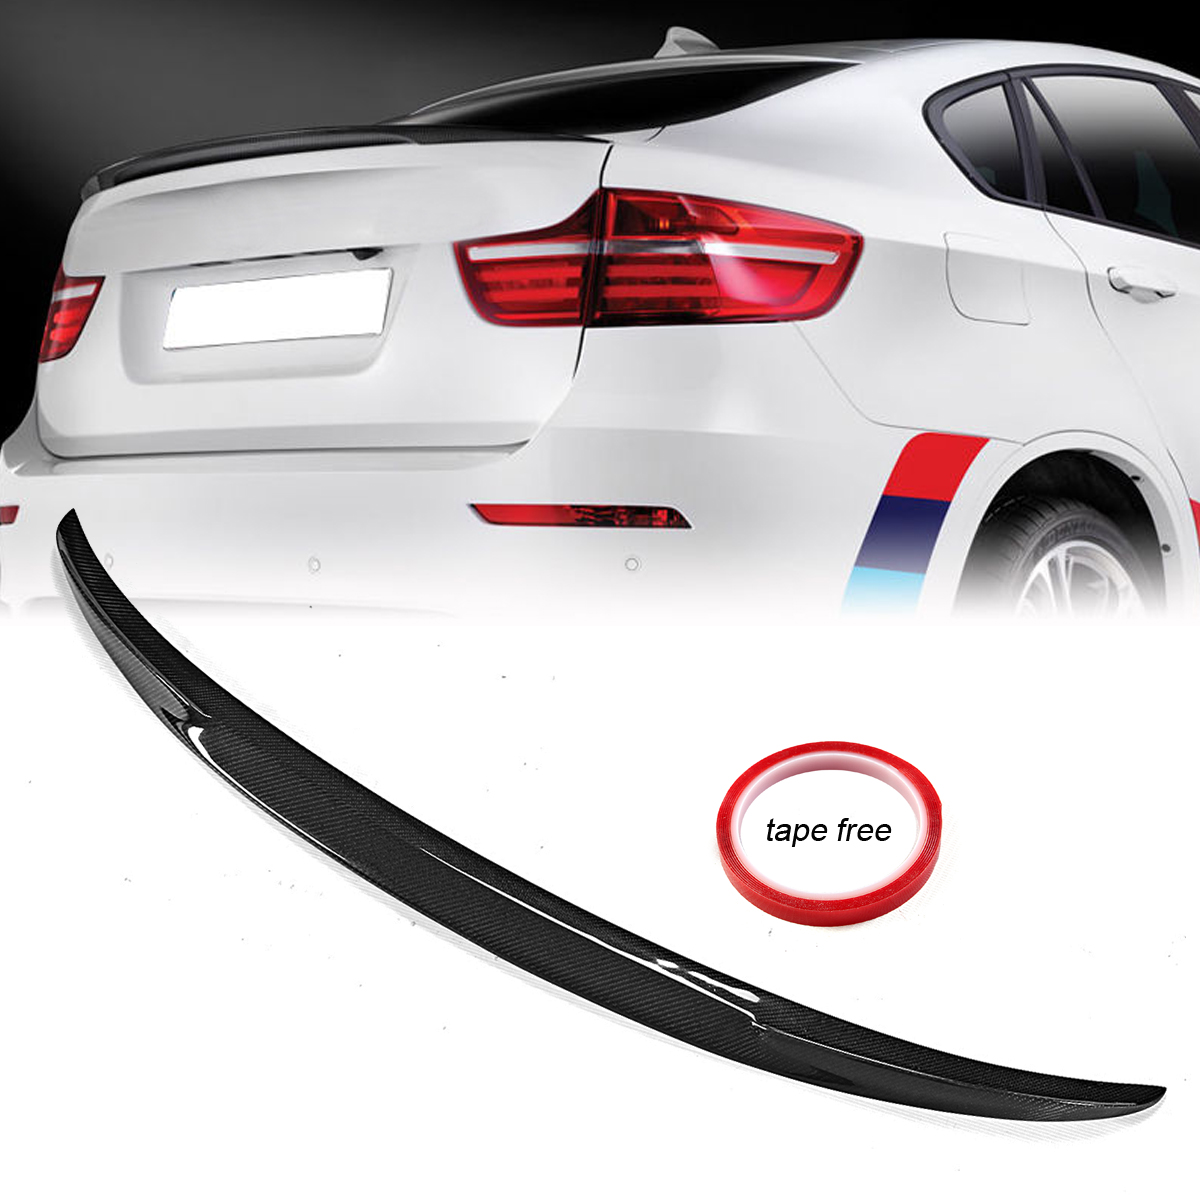 New Auto Car Spoiler Wing for BMW Performance Style Real Carbon Fiber Rear Trunk Lip Spoiler Wing For 2008-2014 for BMW E71 X6 for bmw x6 e71 spoiler carbon fiber spoiler for x6 2008 2009 2010 2011 2012 2013 rear trunk wing performance spoiler page 4